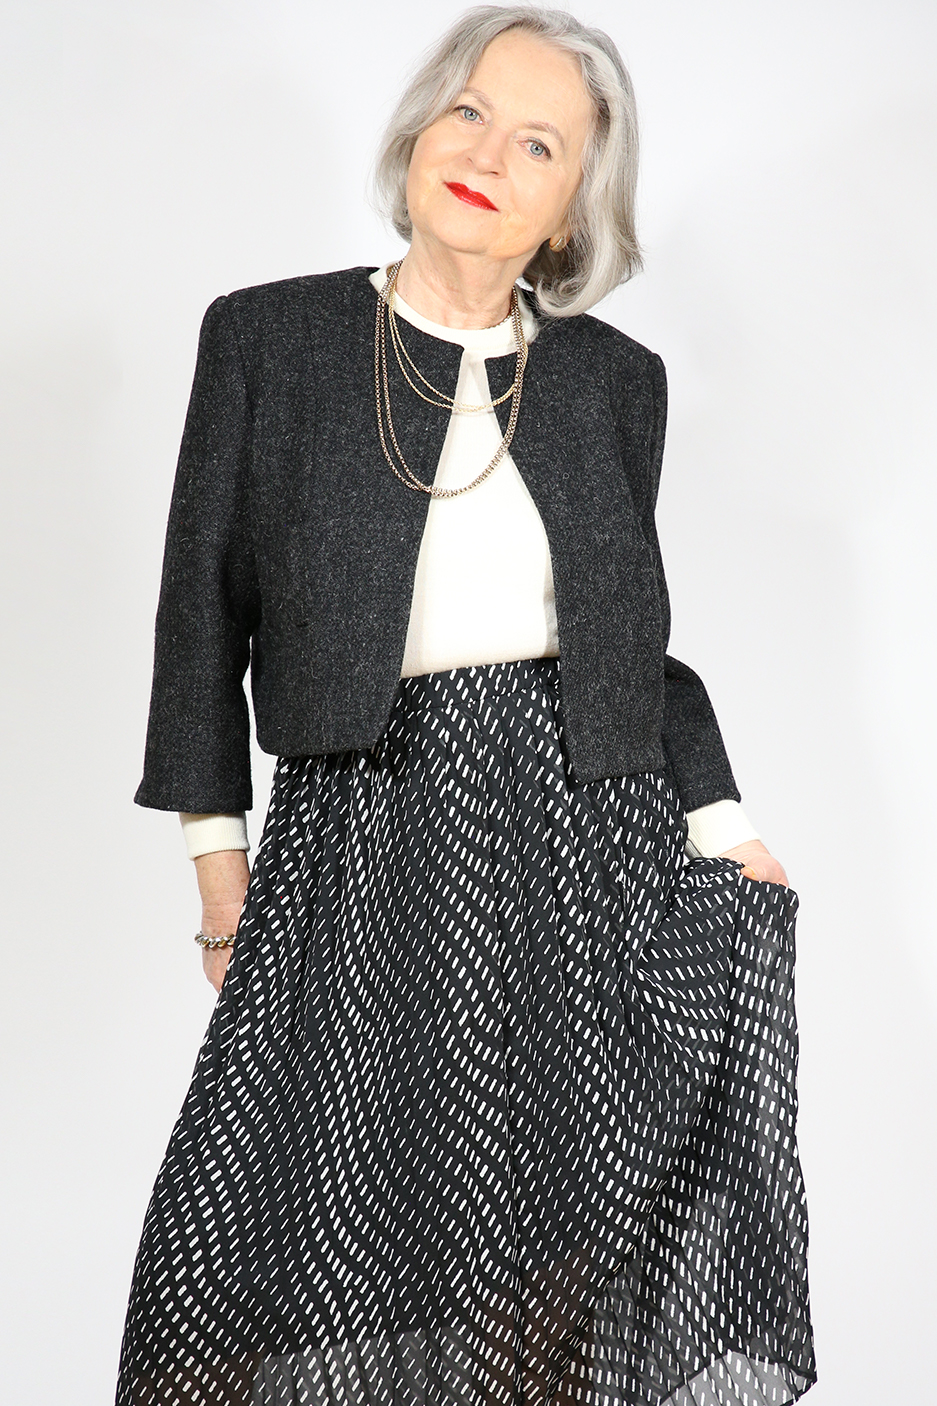 Sewing Pattern Boxy Chanel Cut Jacket from Angela Kane